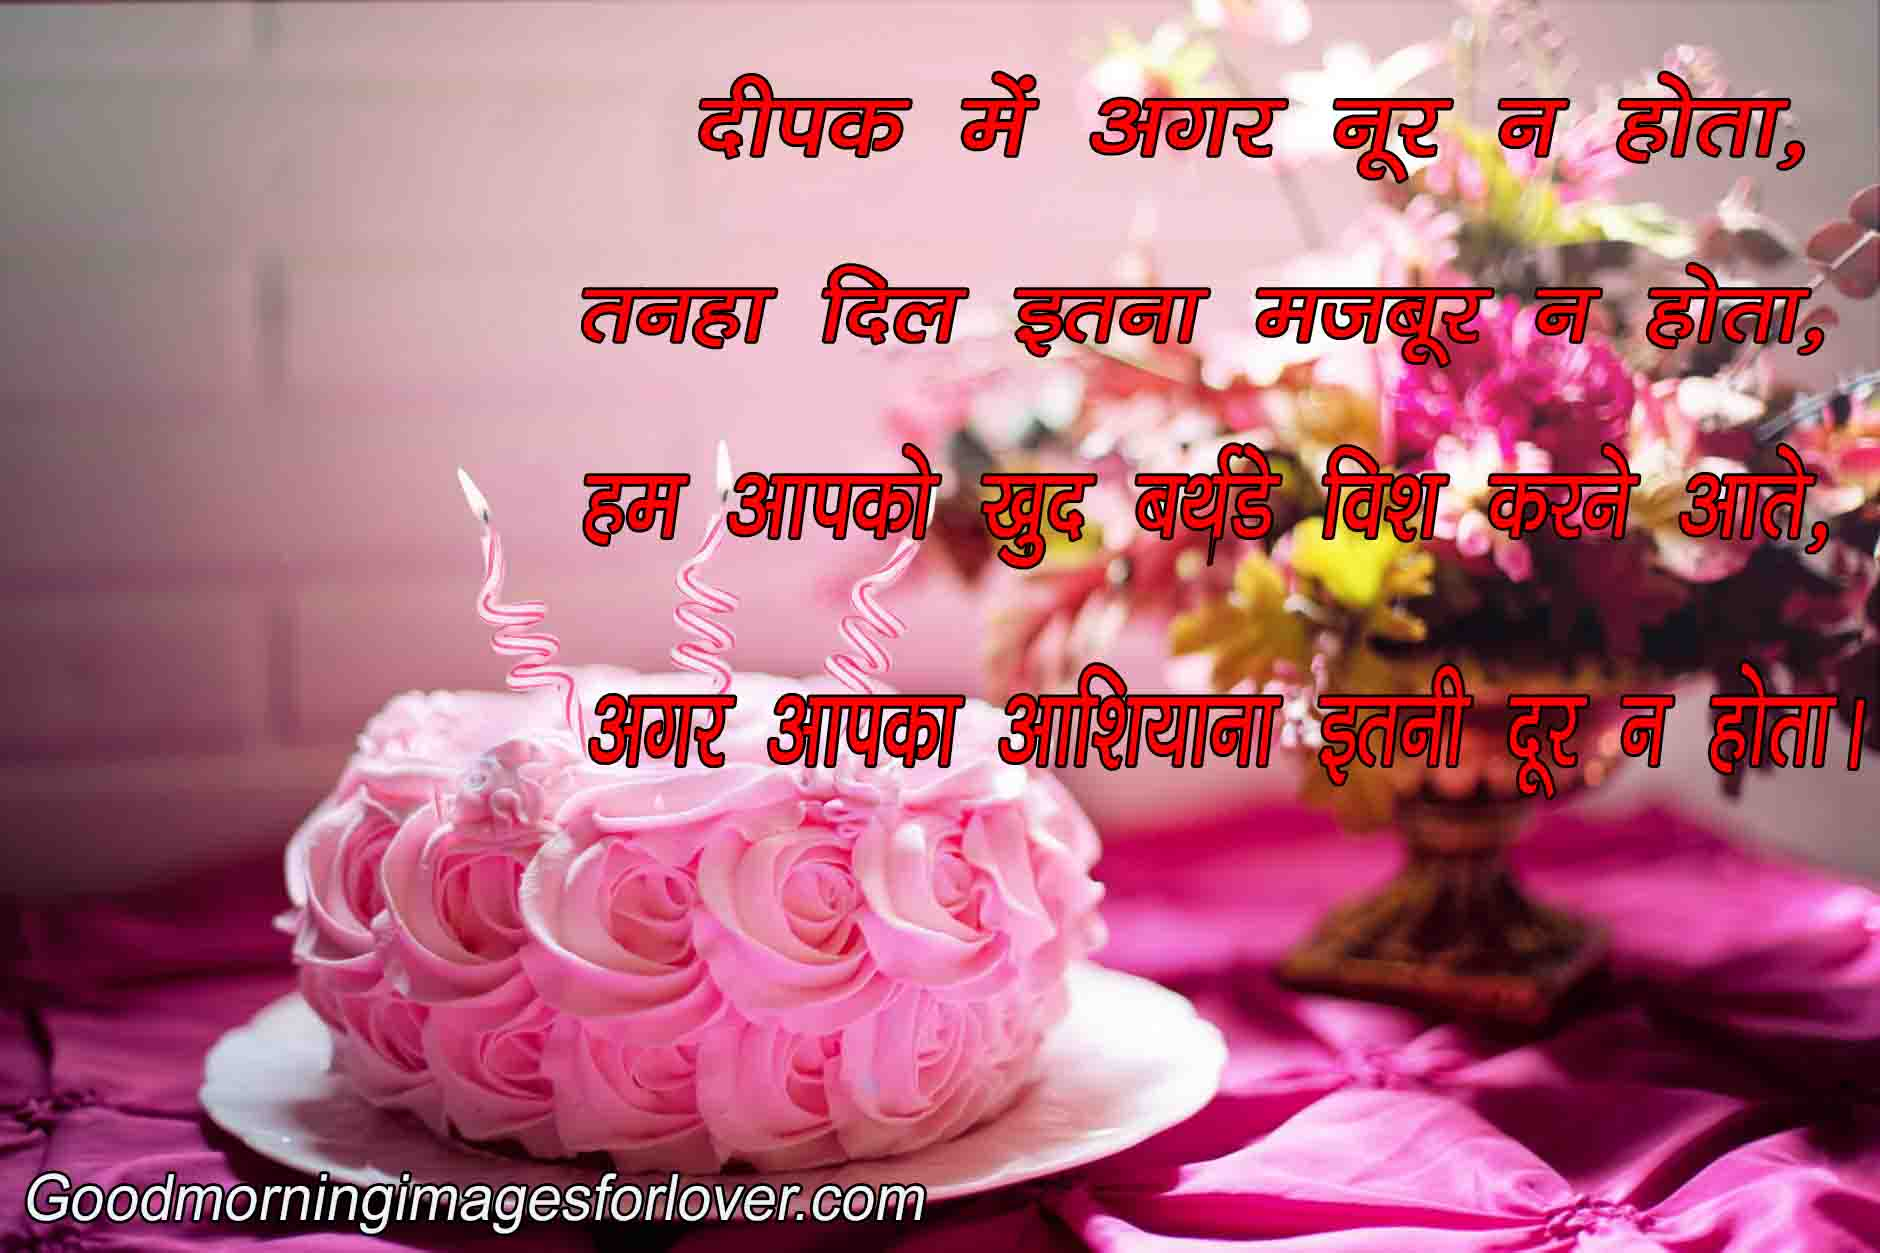 Happy birthday images for husband wife in hindi